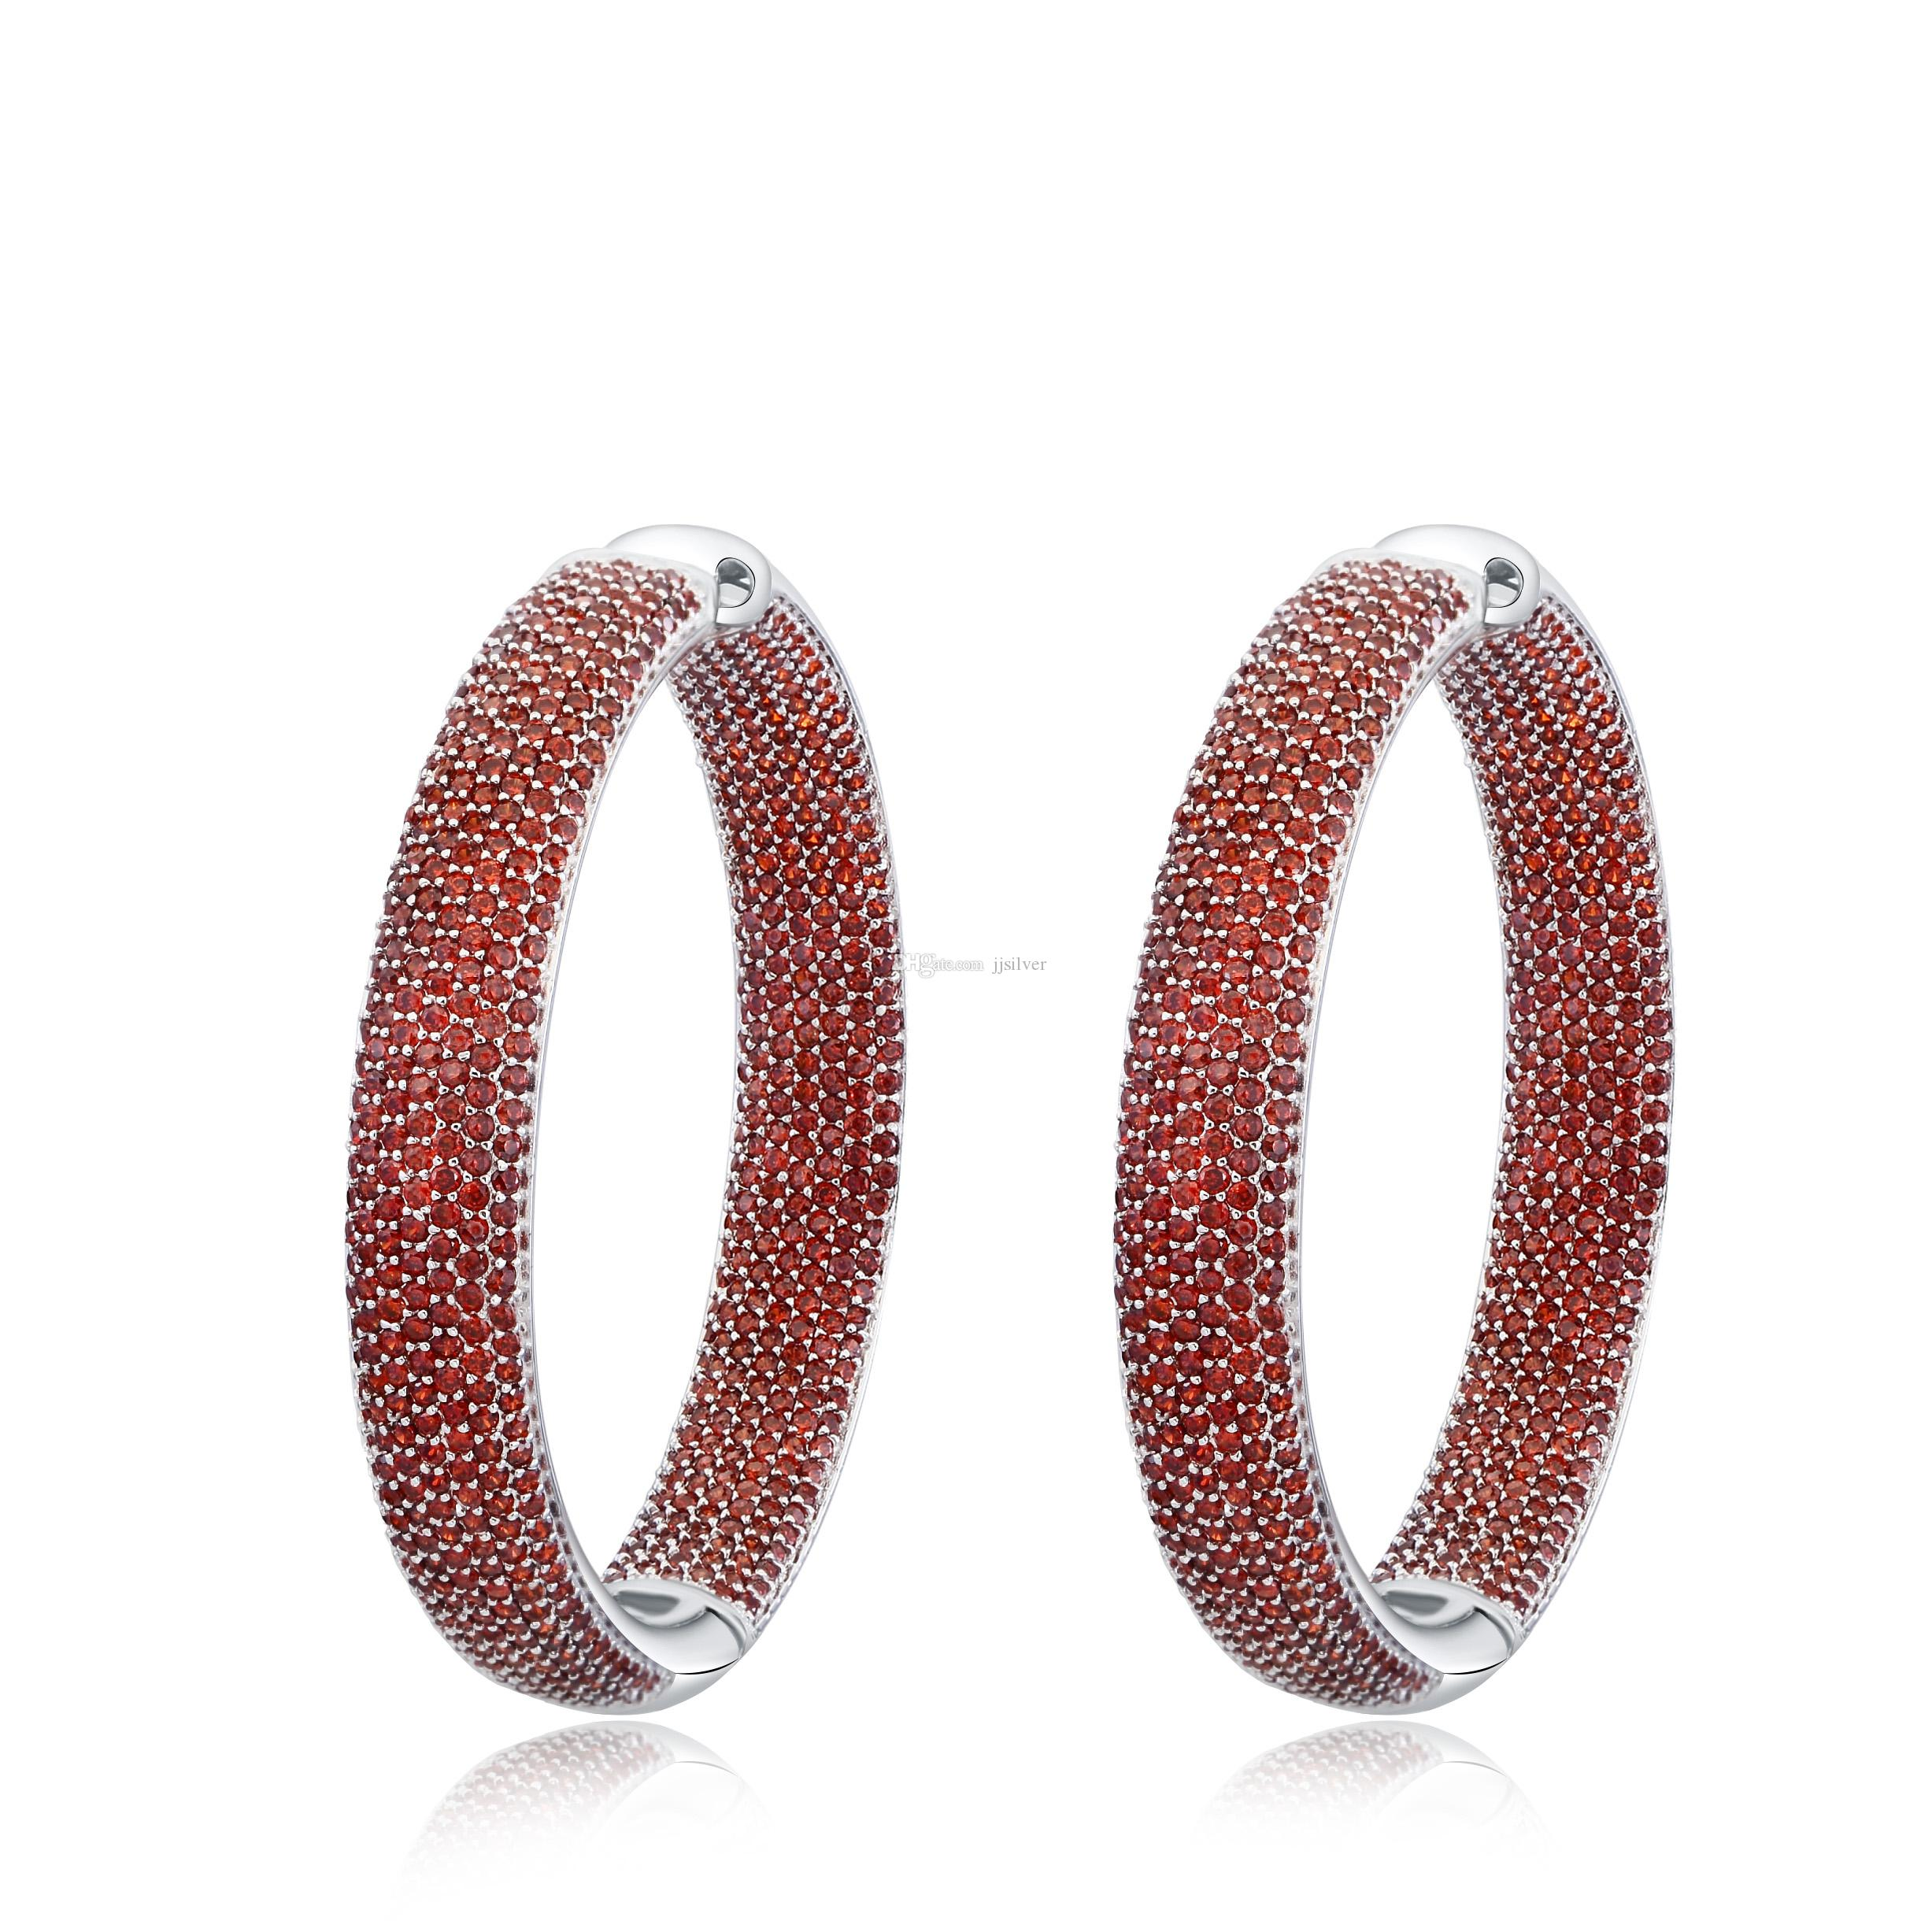 loop products silver img jens d hansen earrings hoop circle